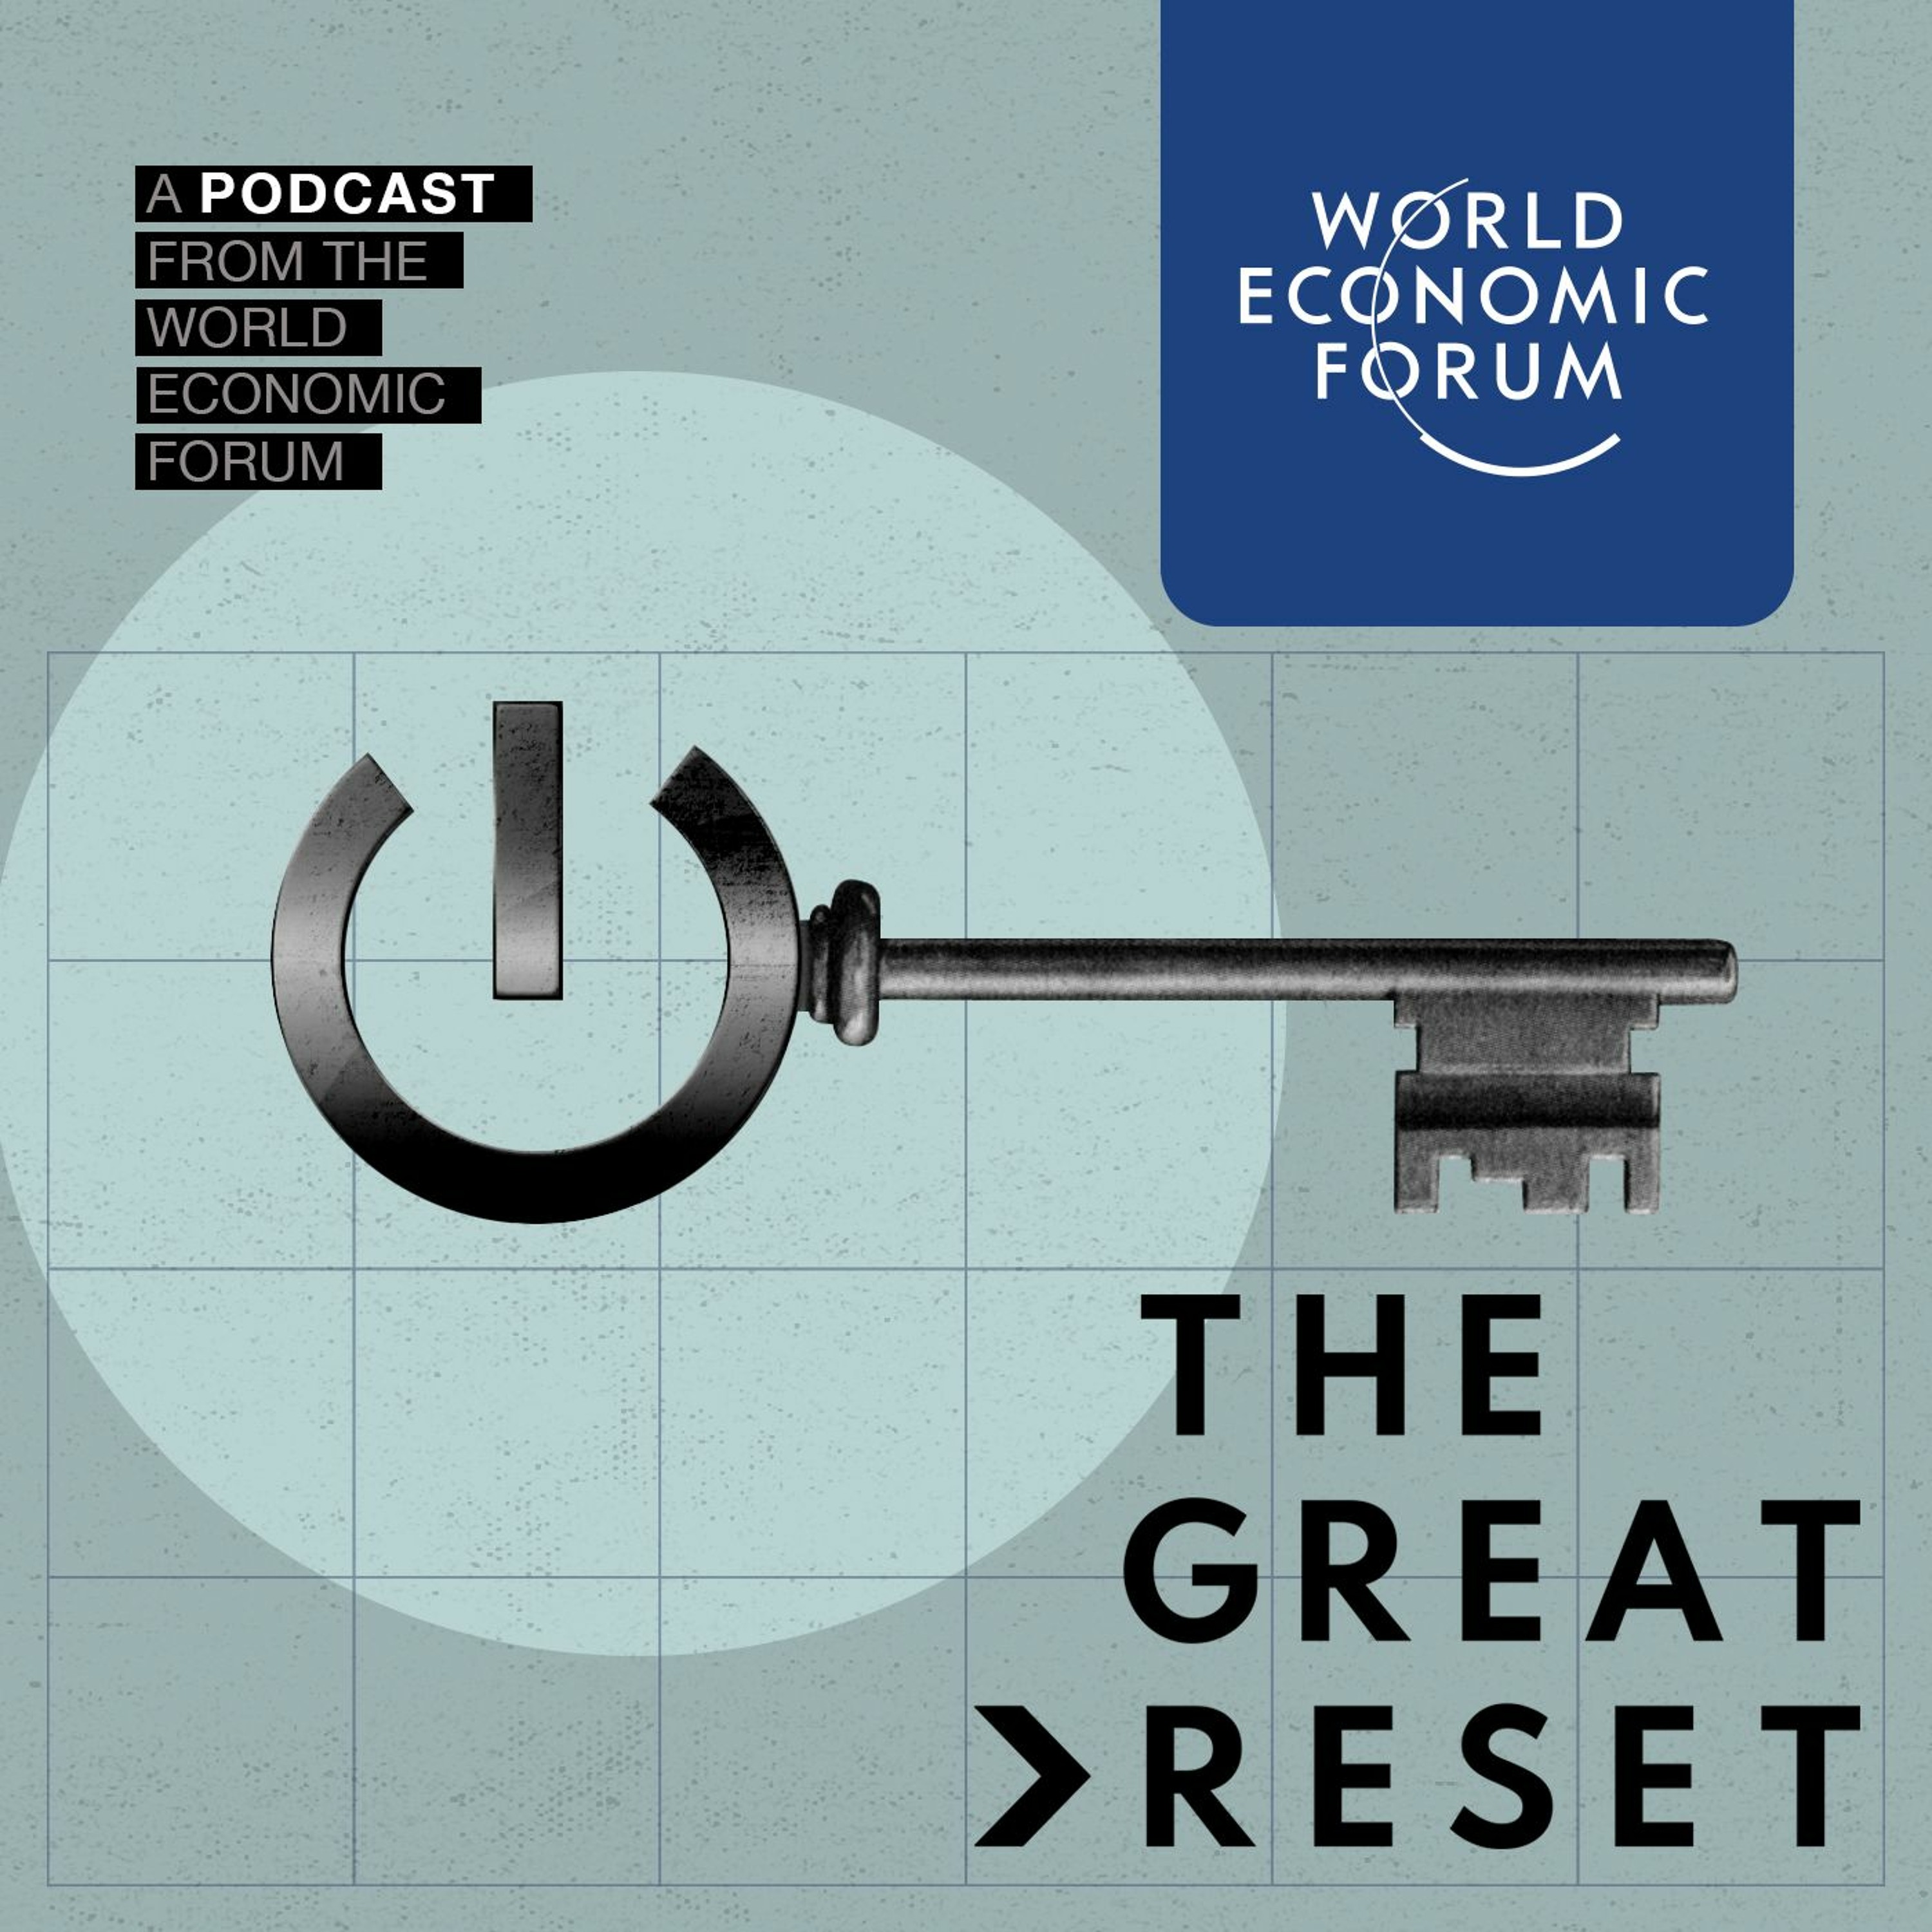 The Great Reset: Shaping the global economic recovery and a new trajectory of growth